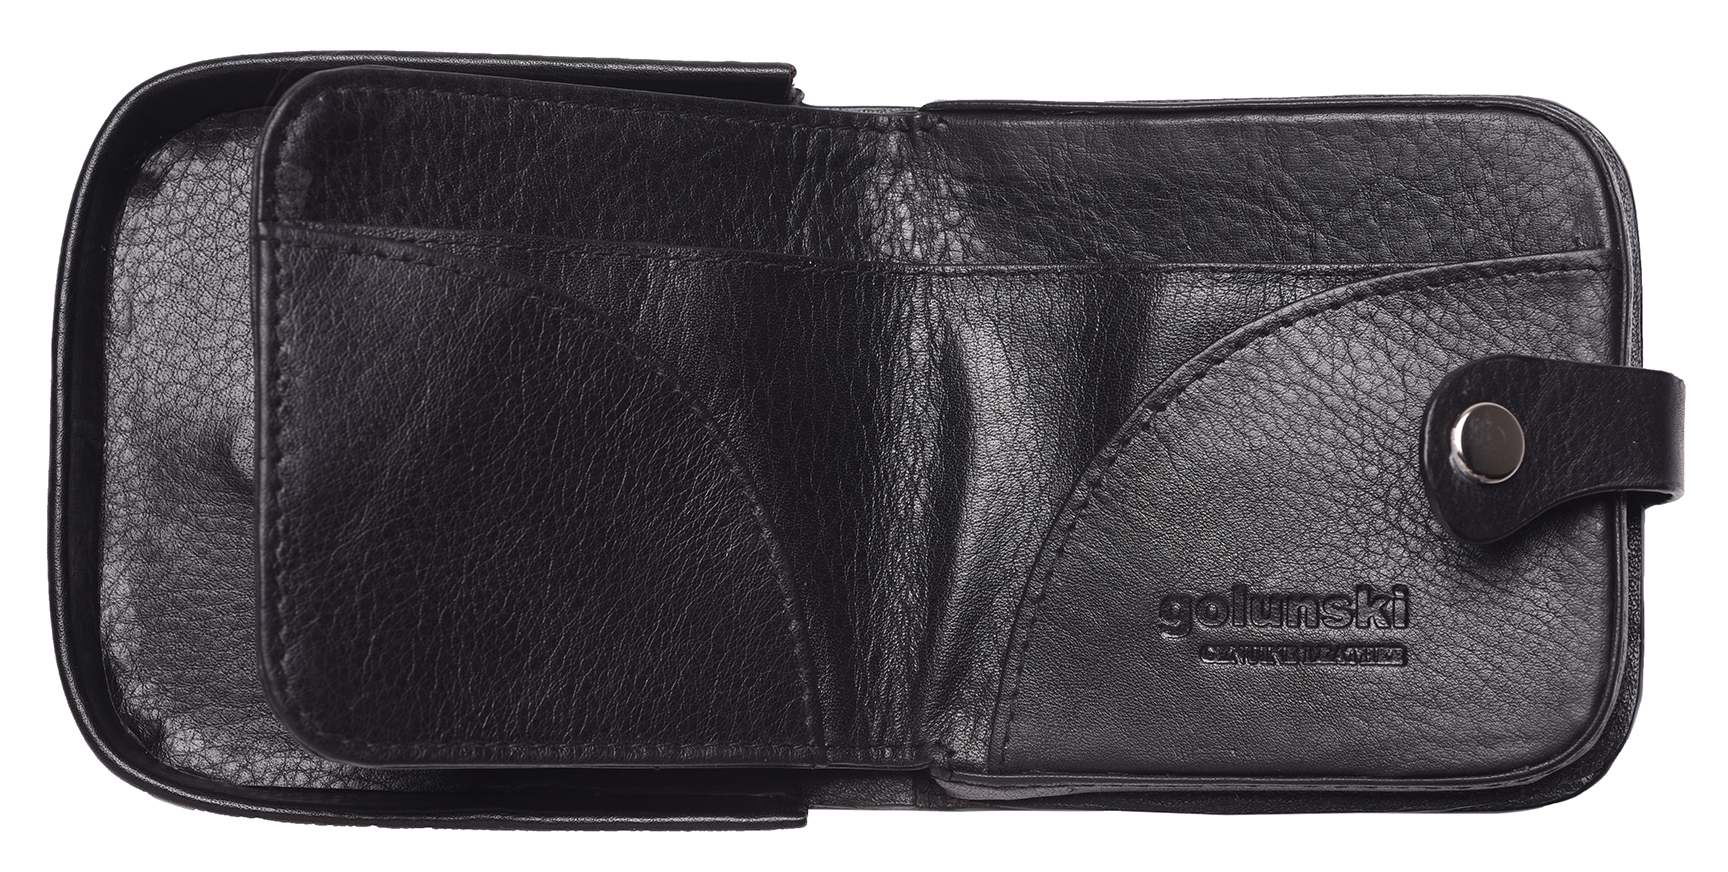 Mens-Gents-Cuir-Veritable-Souple-Changement-Coin-Holder-Wallet-Purse-Black-Tan miniature 10